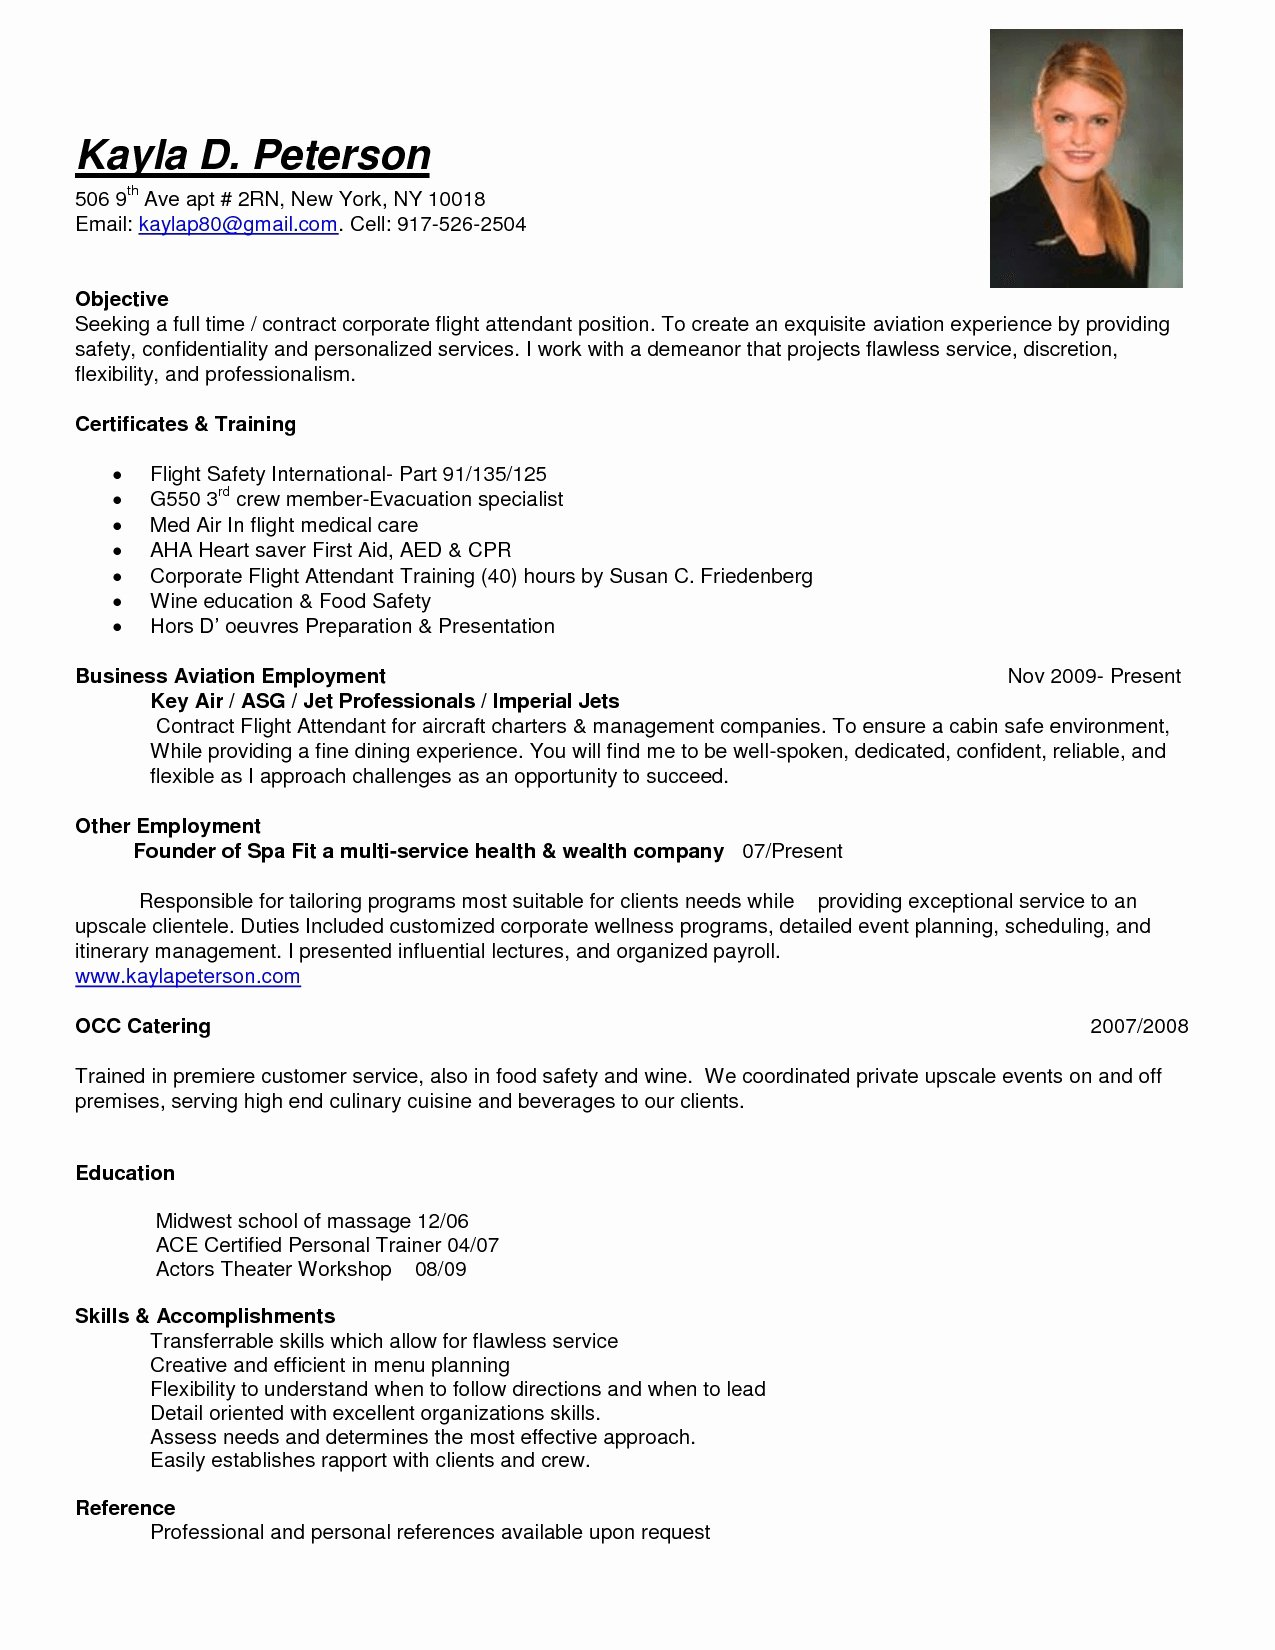 Stunning Resume for Flight attendant with No Experience